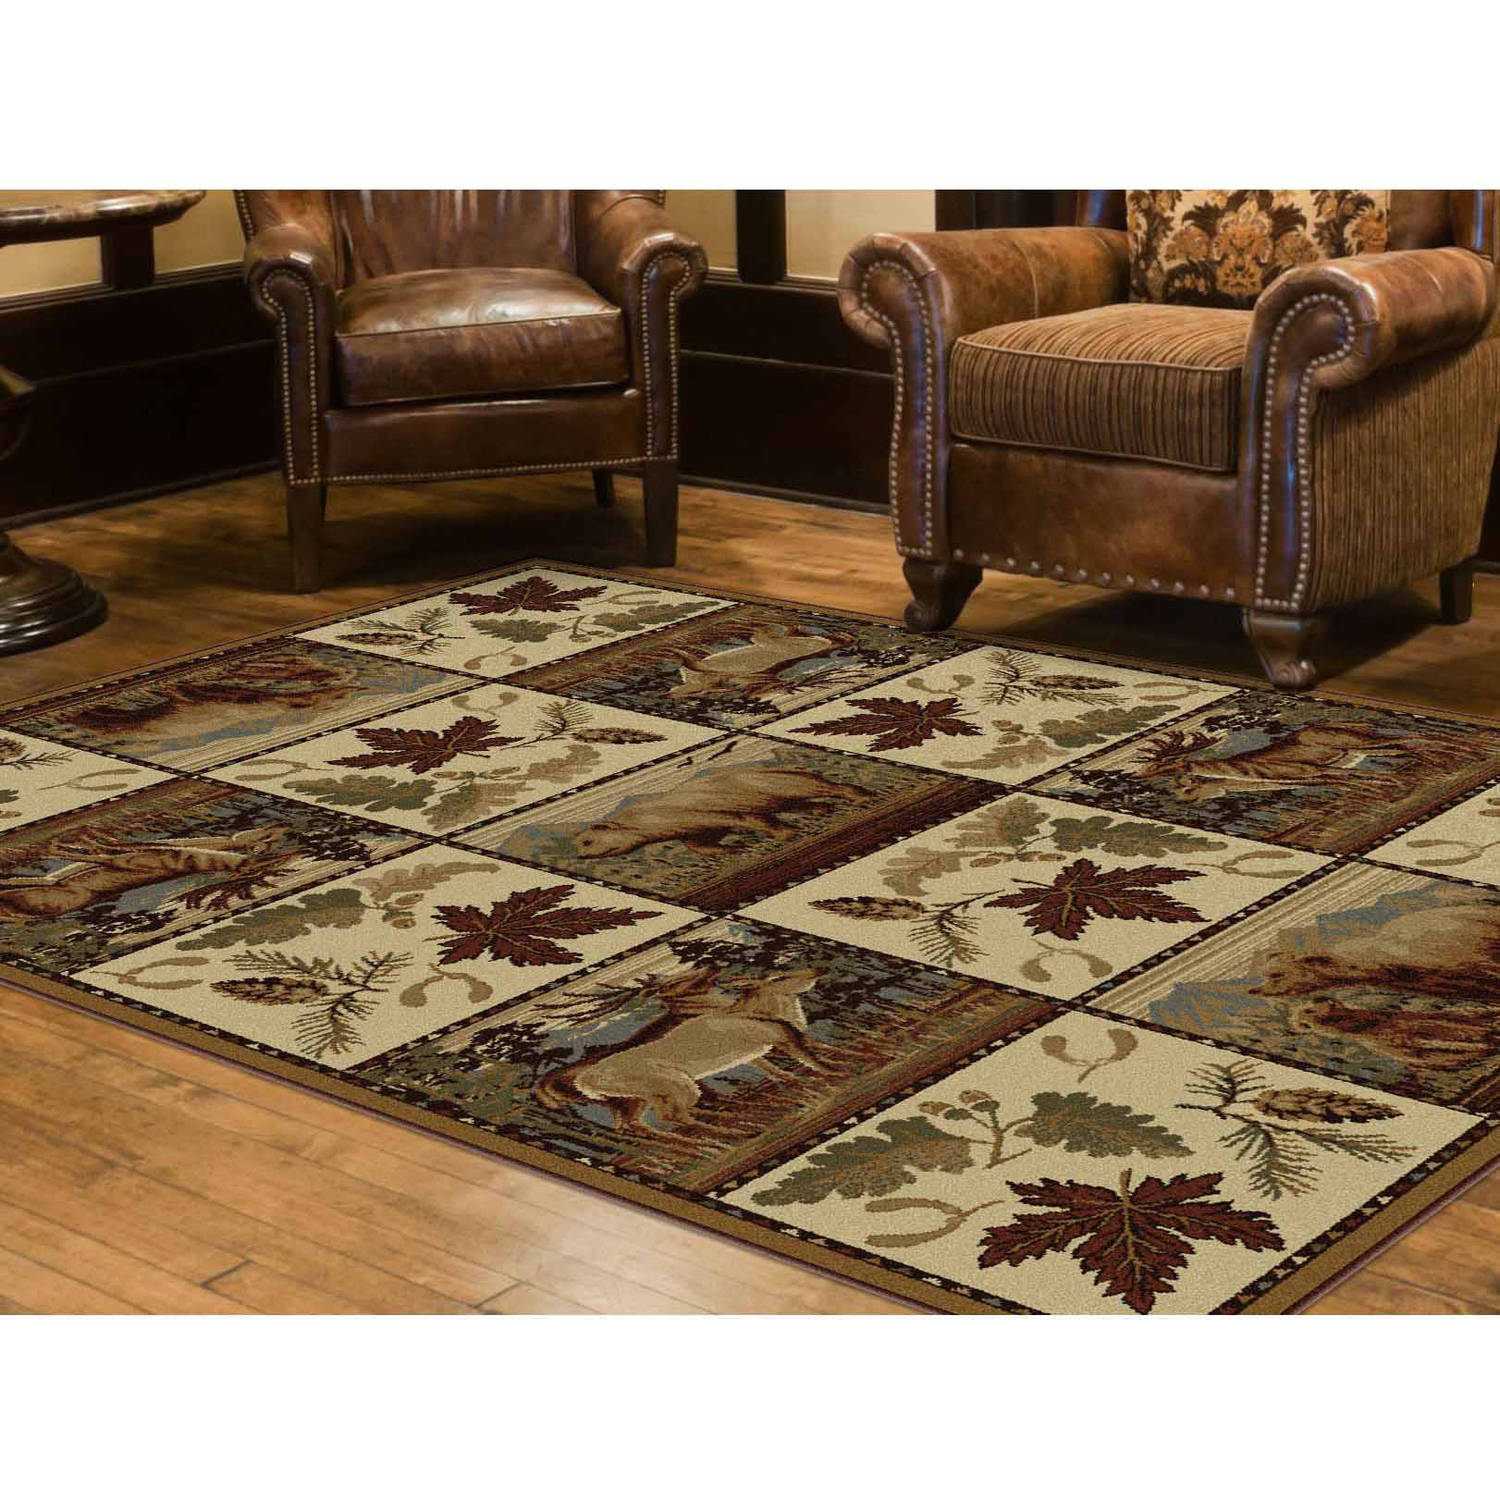 Bliss Rugs Porter Lodge Area Rug Walmart Com